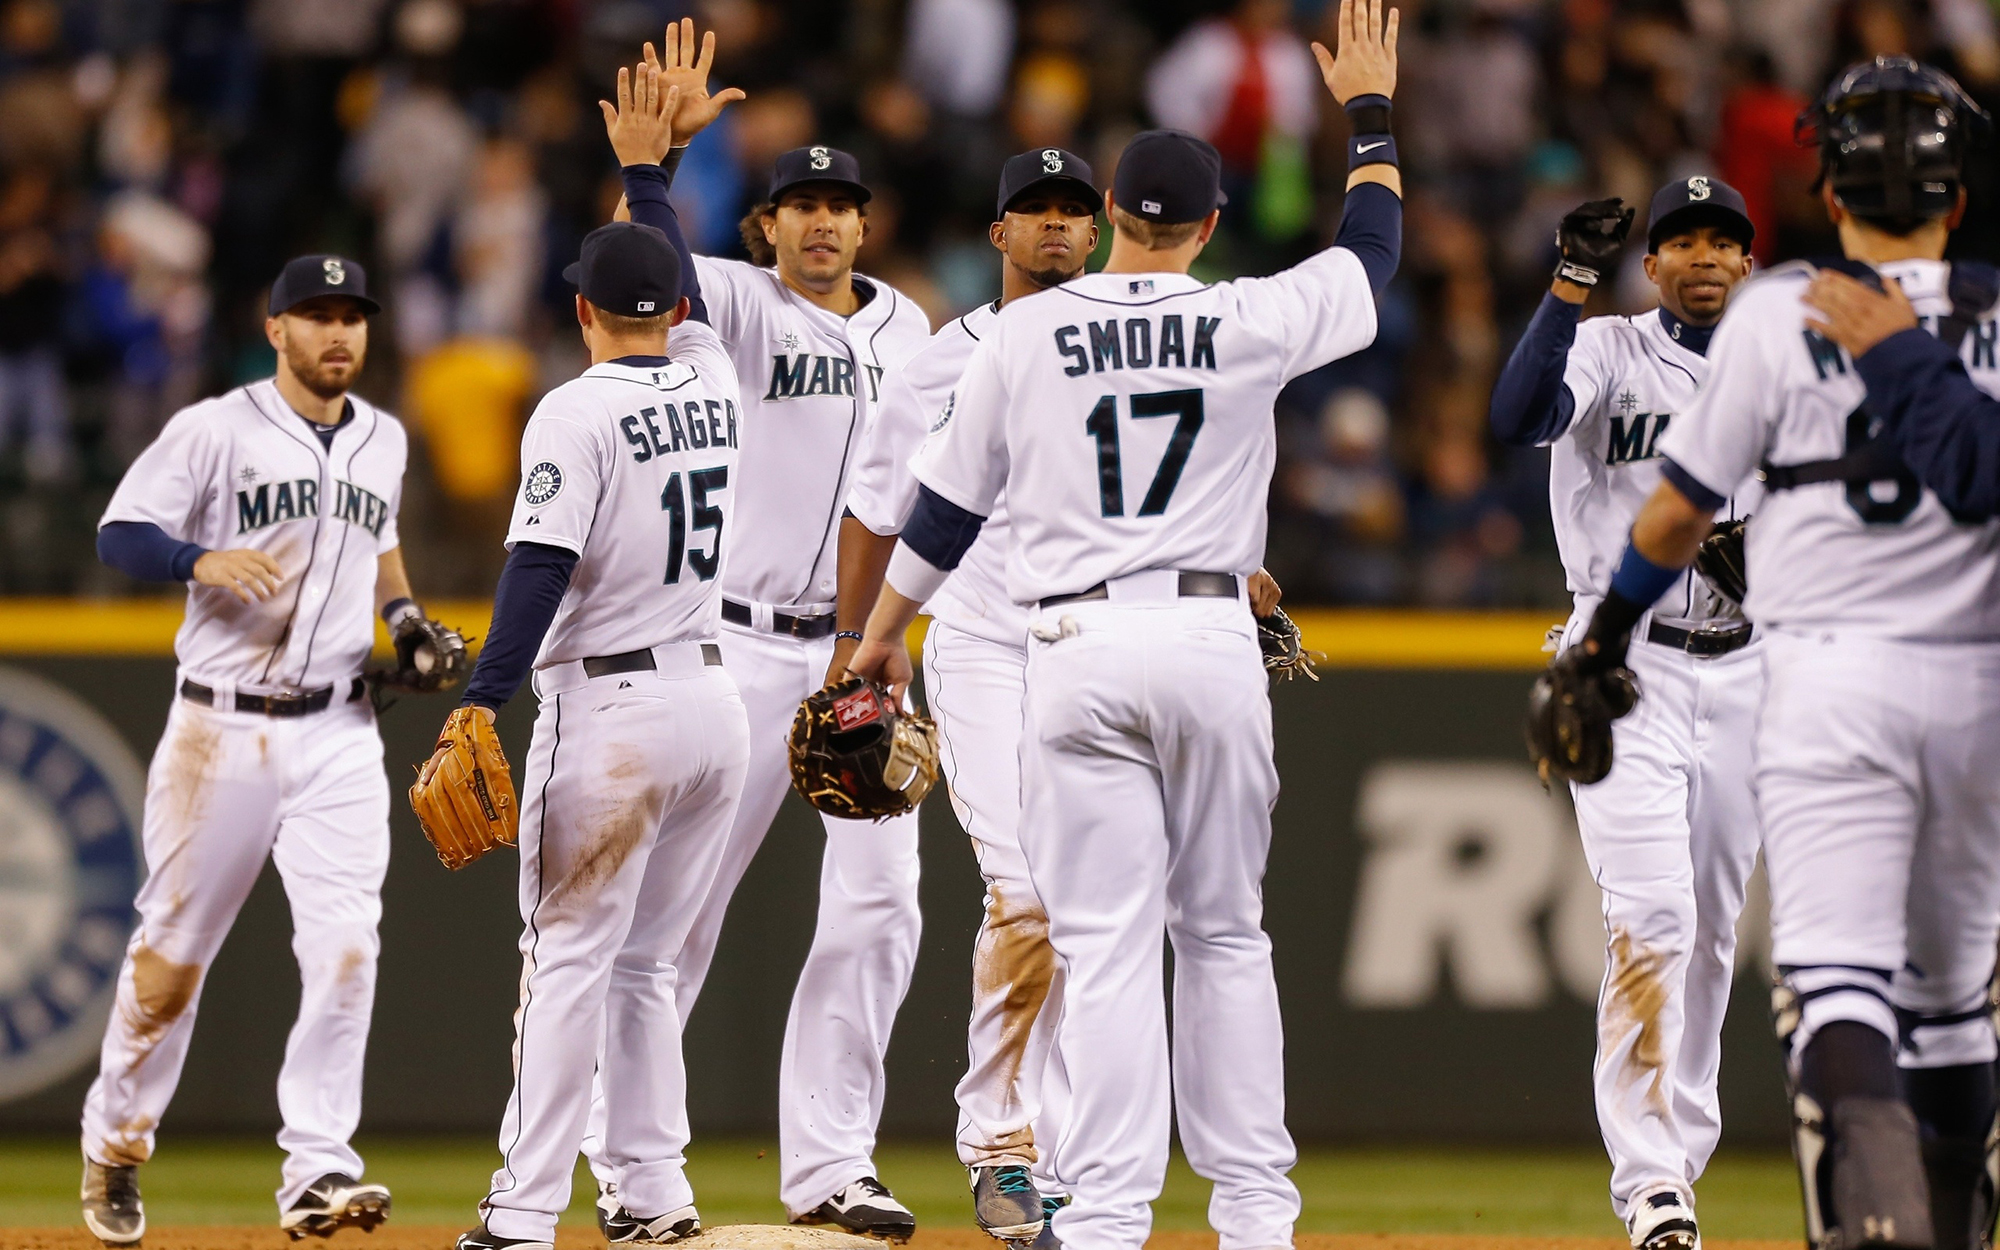 Mariners Fighting for a Playoff Spot